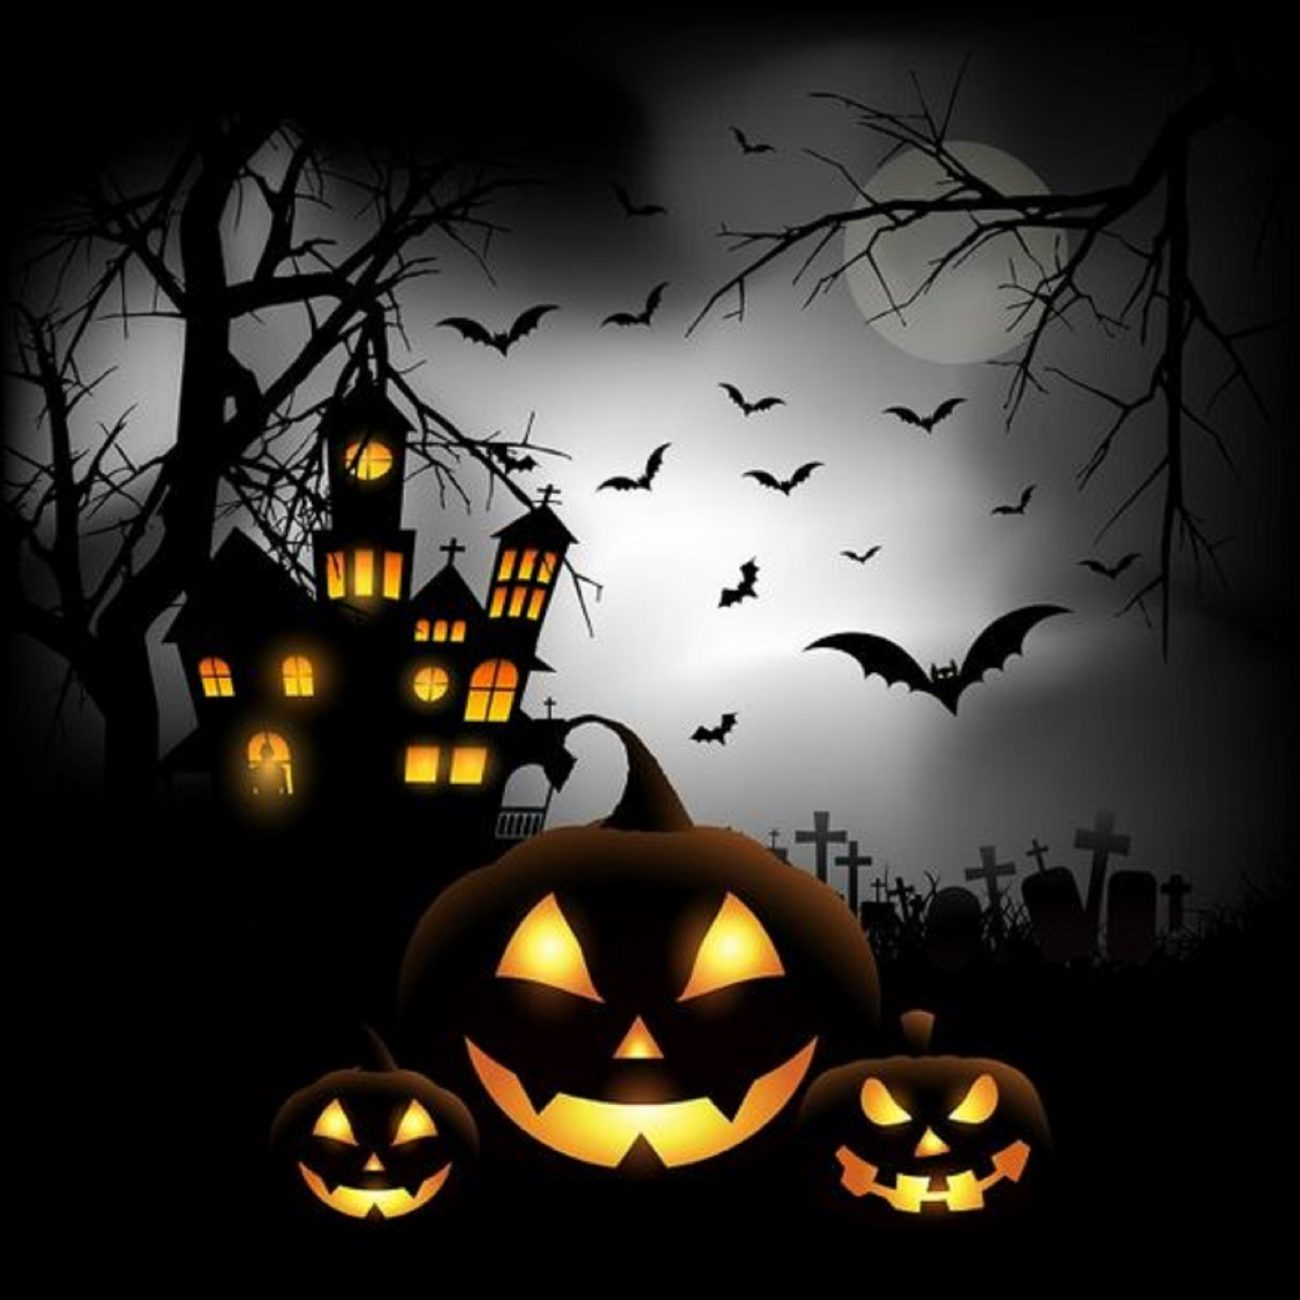 Spooky! BestSelling WordPress Themes Will Give You a TREAT Now!